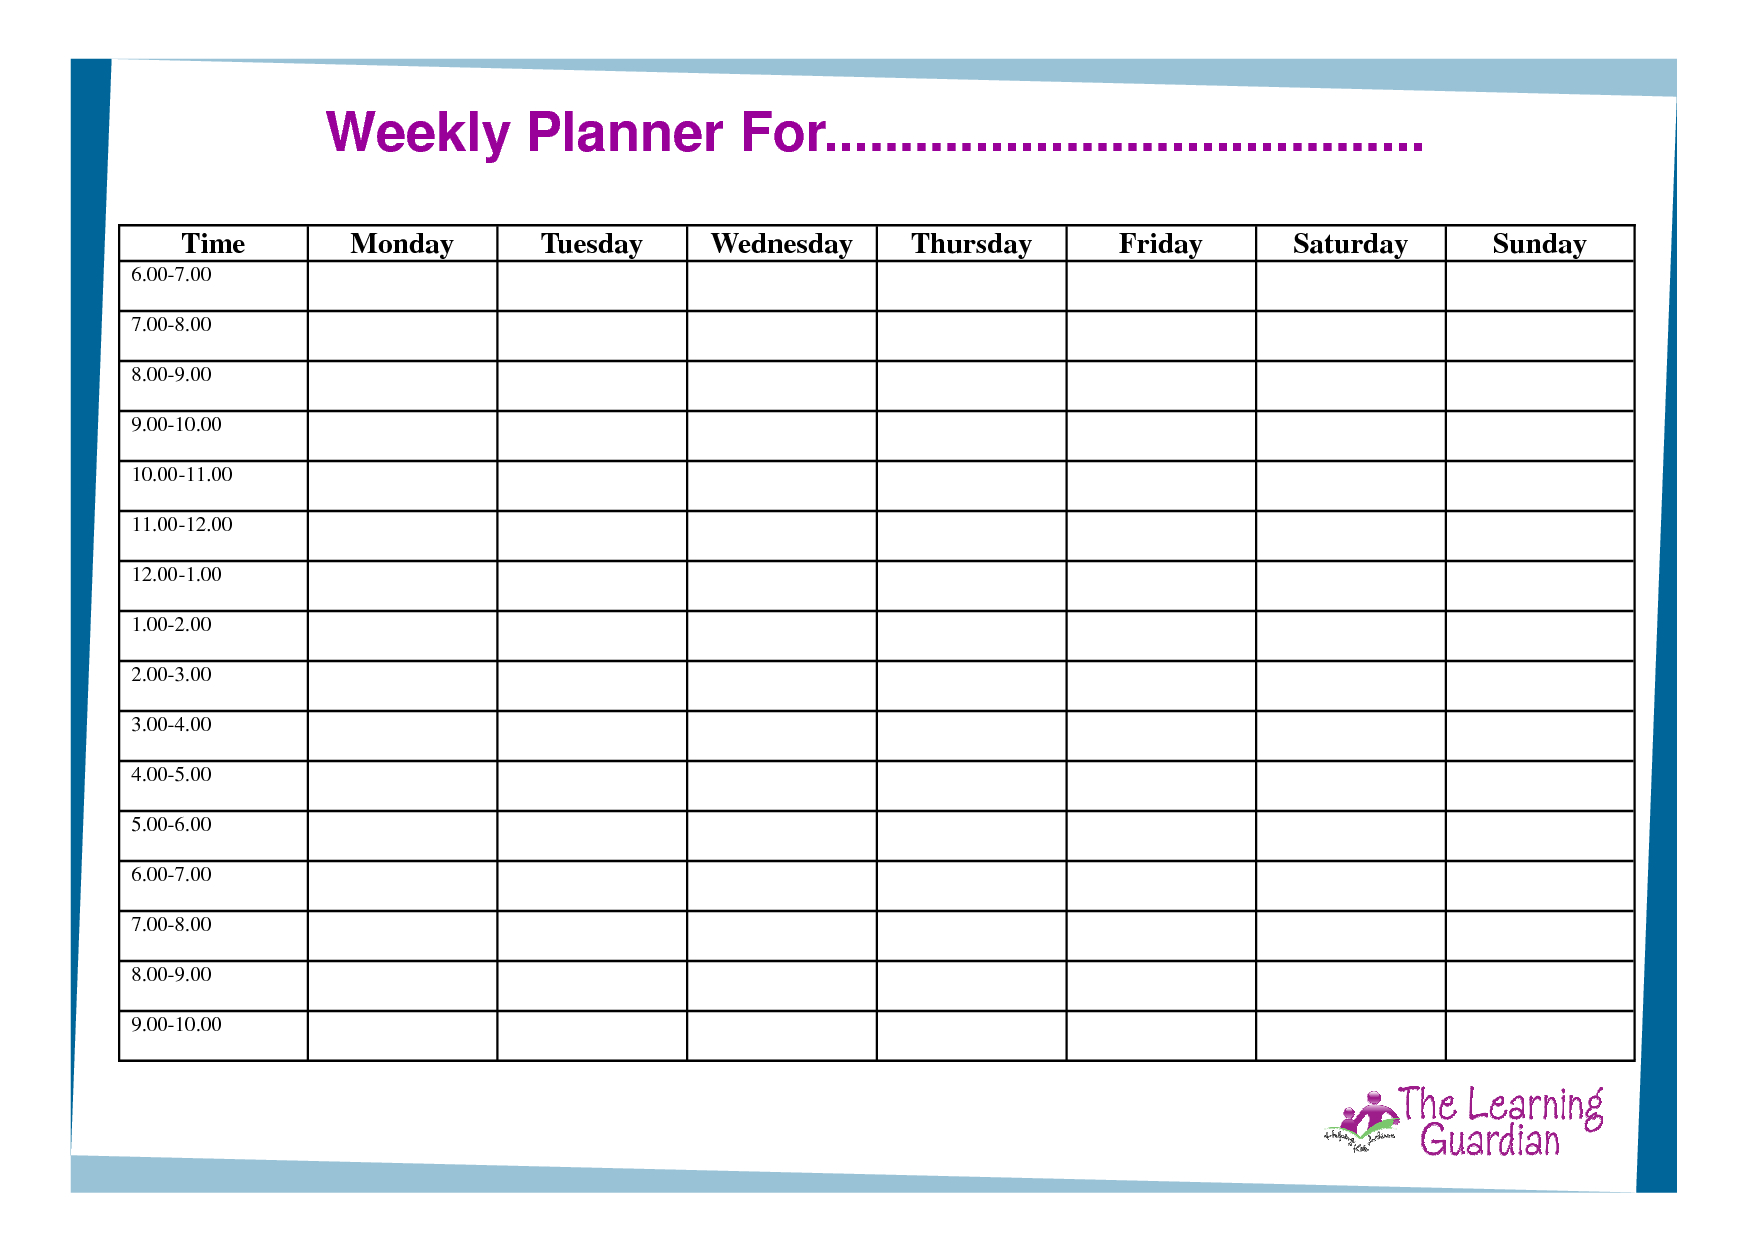 Free Printable Weekly Calendar Templates | Weekly Planner For Time - Free Printable Weekly Schedule